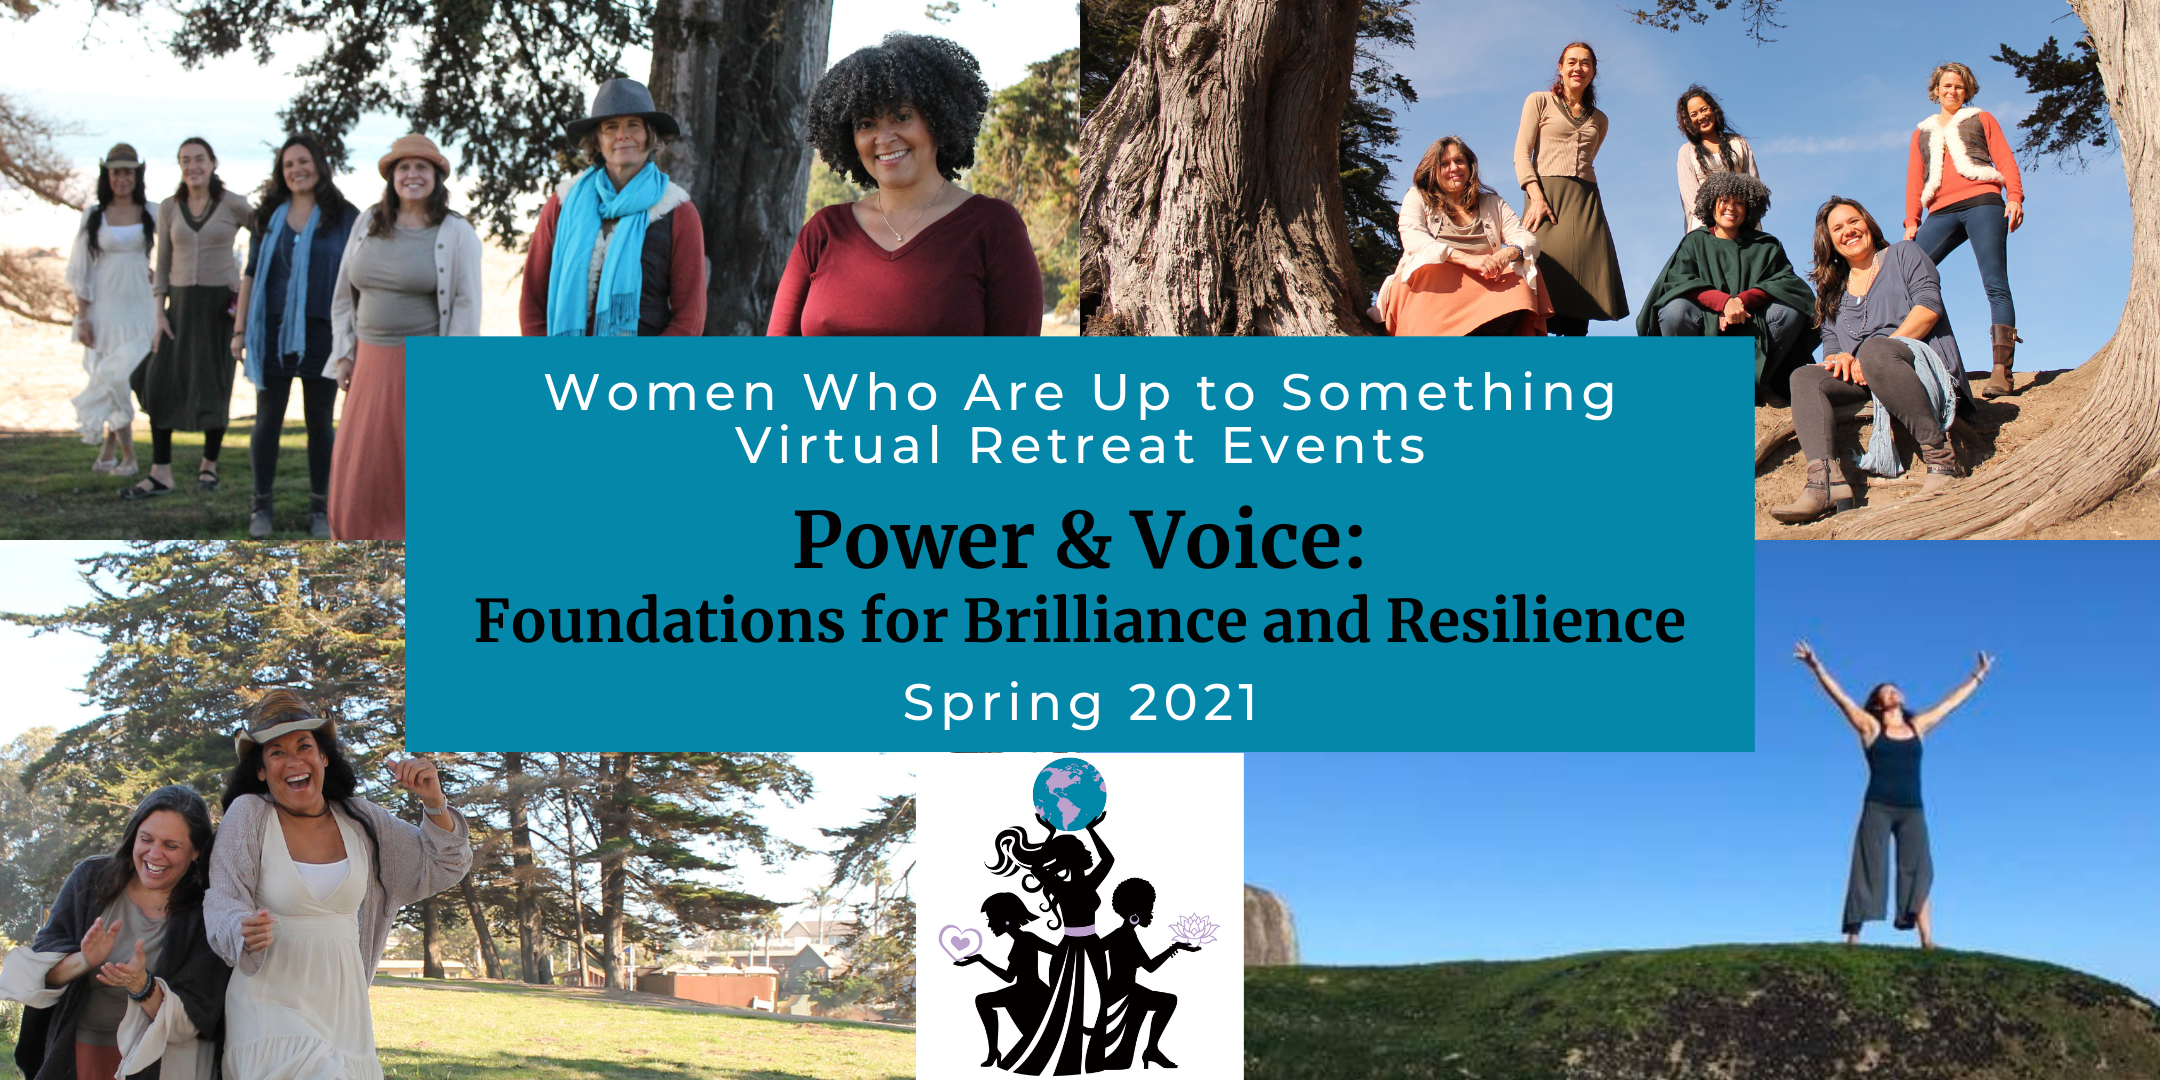 Women Who Are Up to Something Virtual Retreat Events. Power & Voice: Foundations for Brilliance & Resilience. Spring 2021.